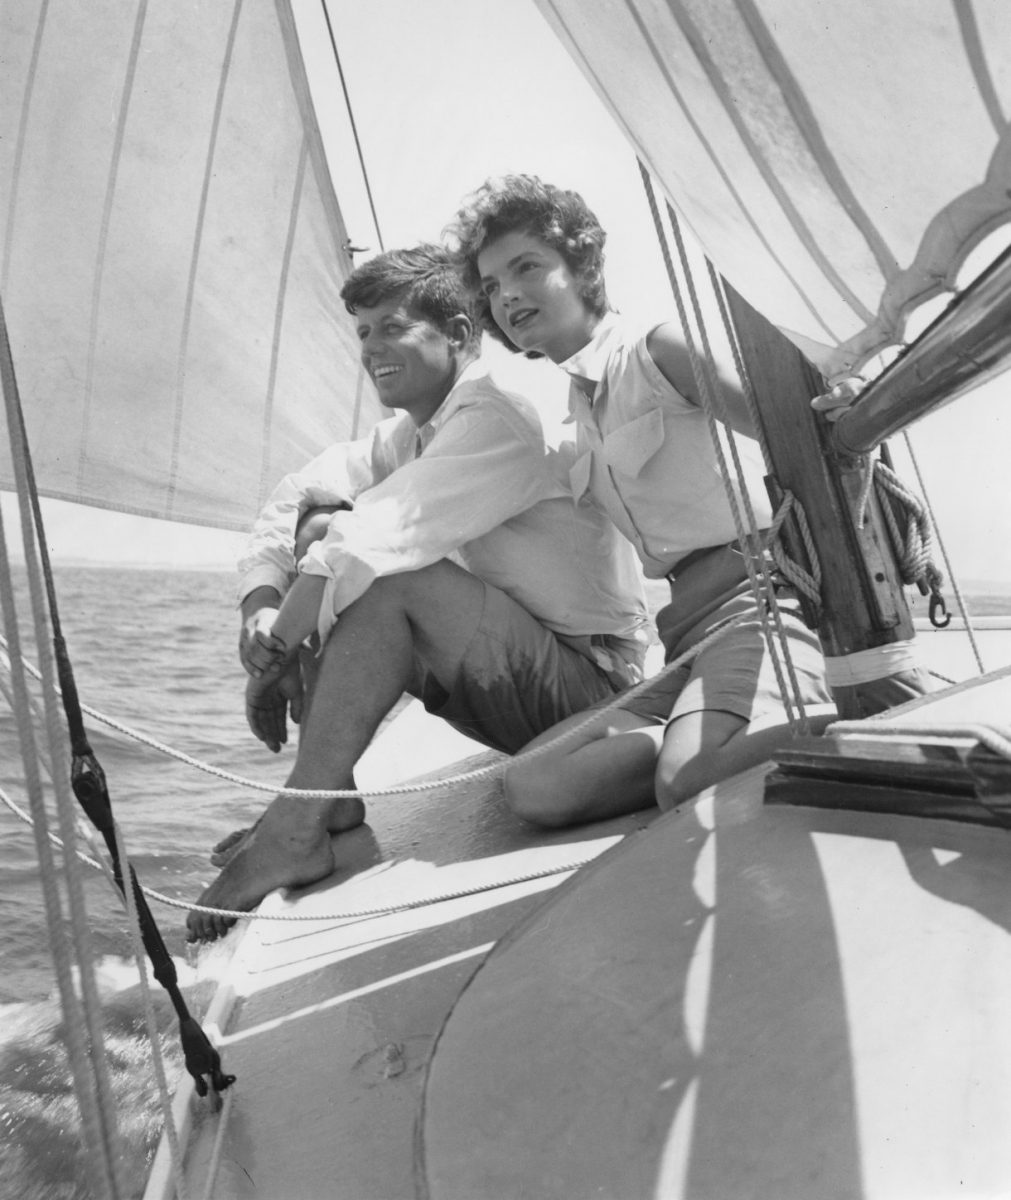 HYANNIS PORT, MA - 1953: Senator John F. Kennedy and fiance Jacqueline Bouvier go sailing while on vacation at the Kennedy compound